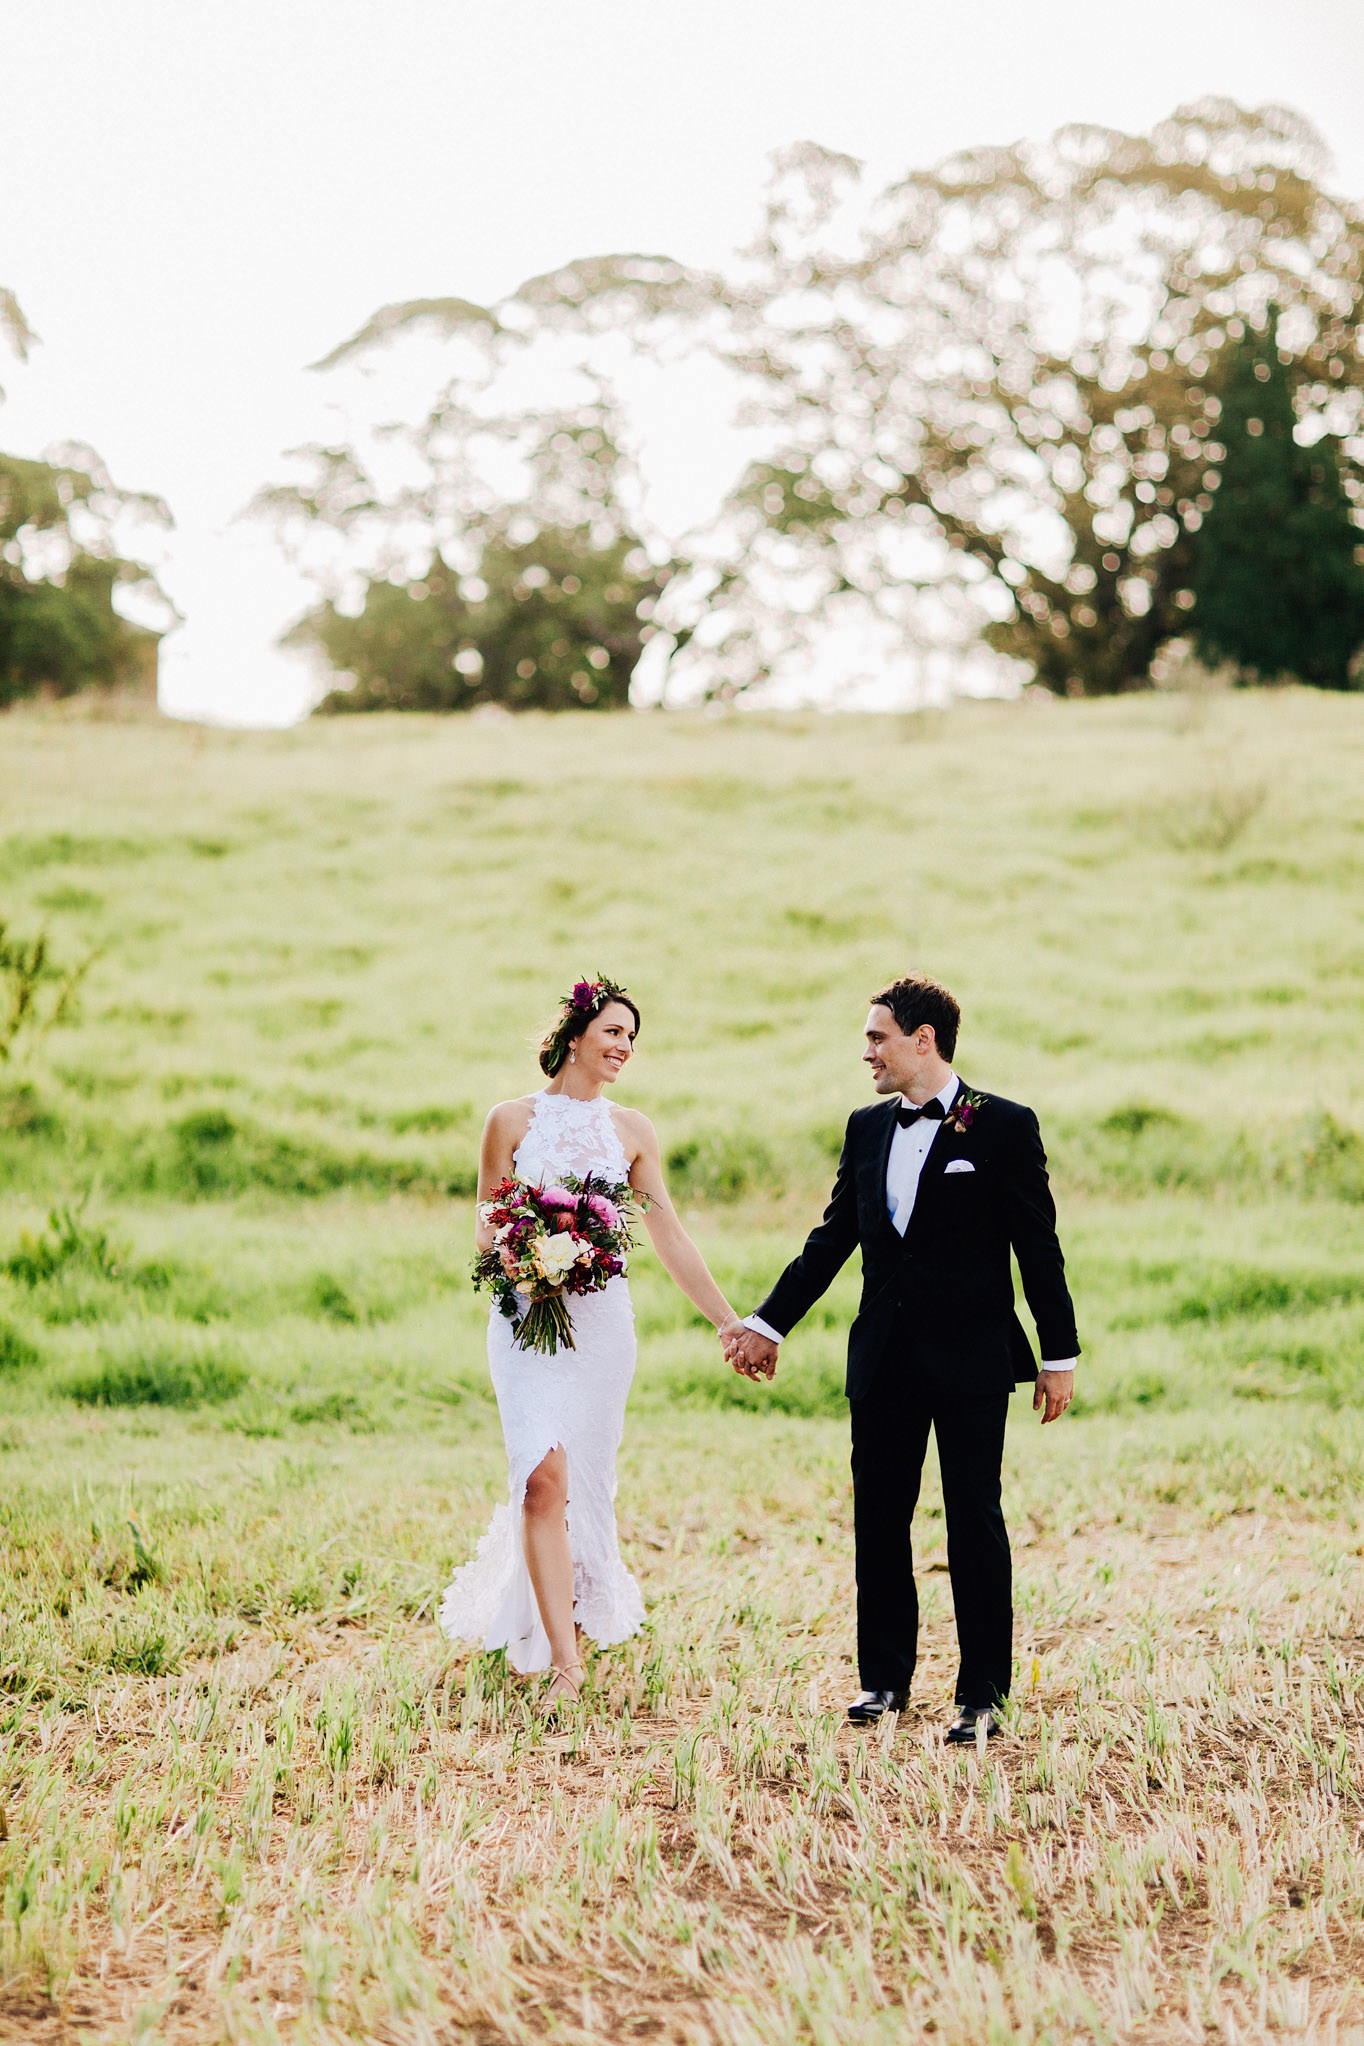 TocalHomestead_WeddingPhotography_LaurenAnnePhotography-1115.jpg